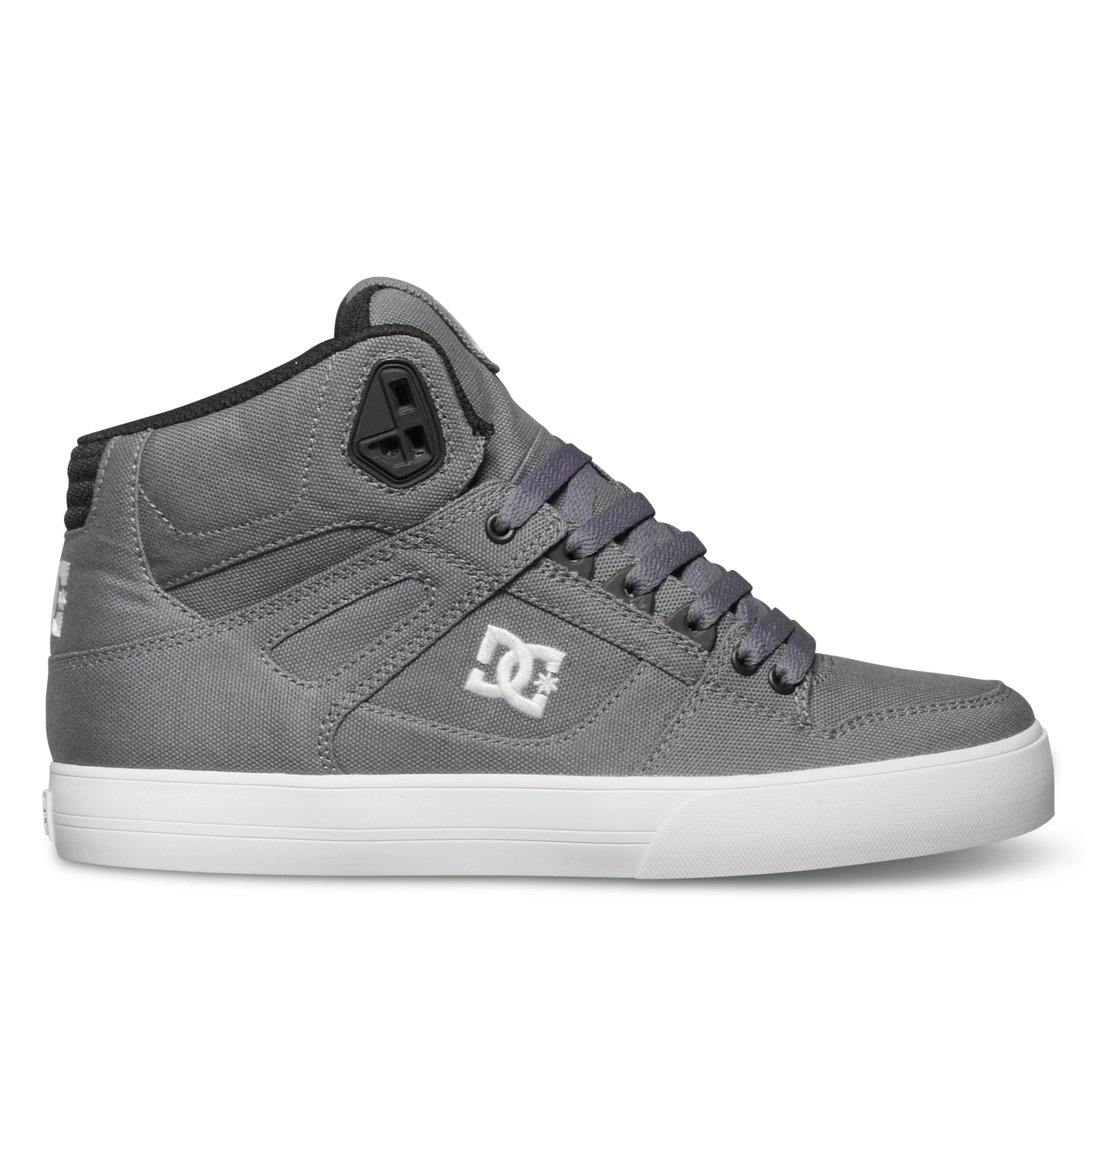 Dc Shoes Spartan Wc Tx